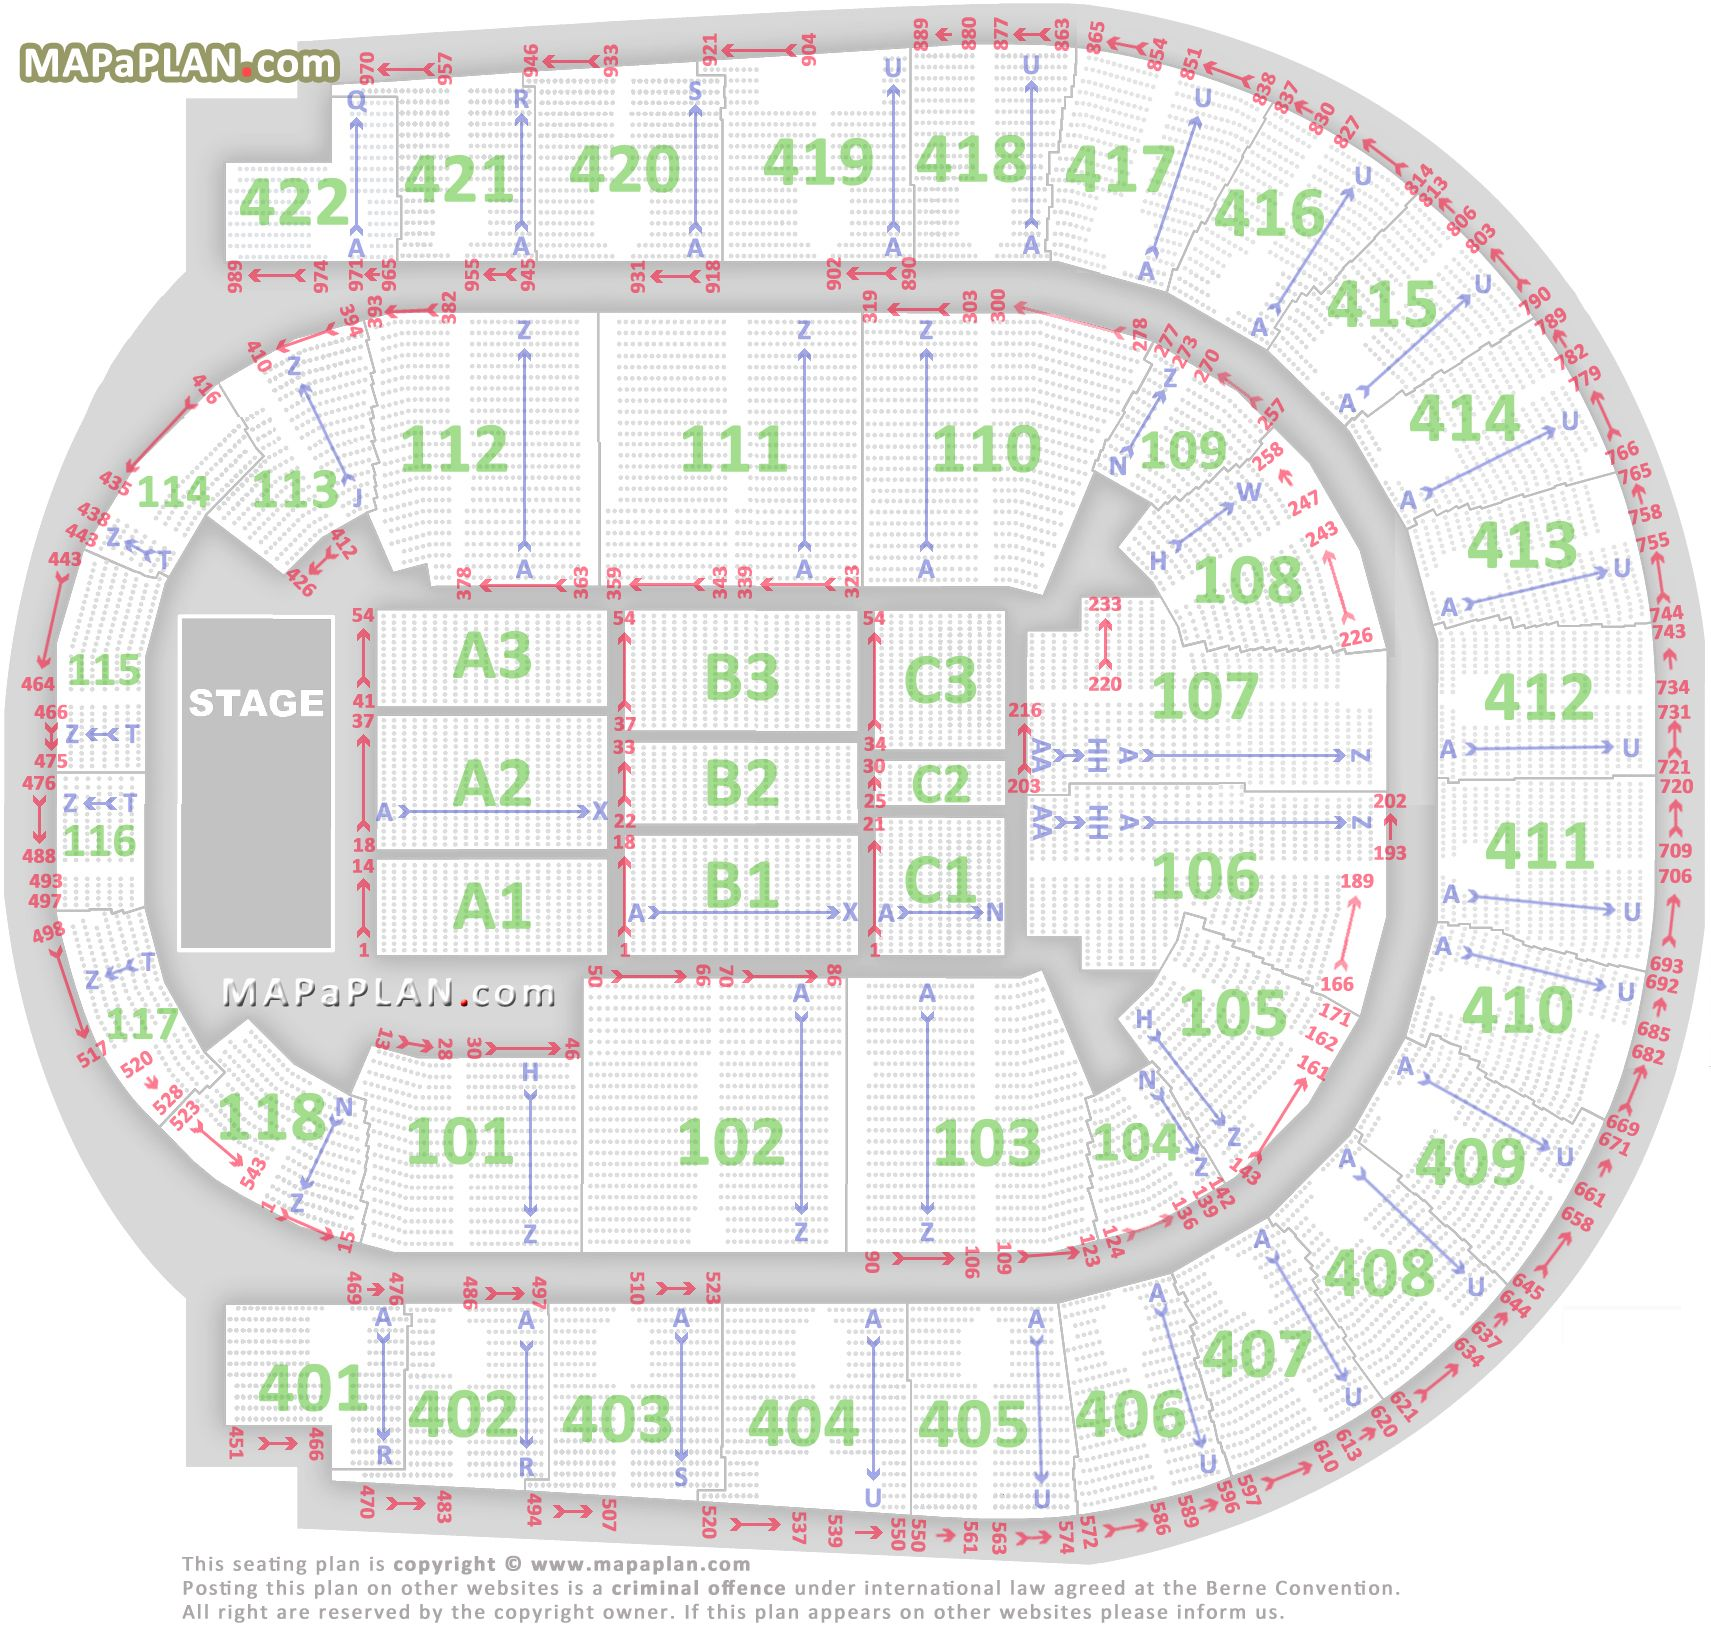 The O2 Arena London Seating Plan Detailed Seats Rows And